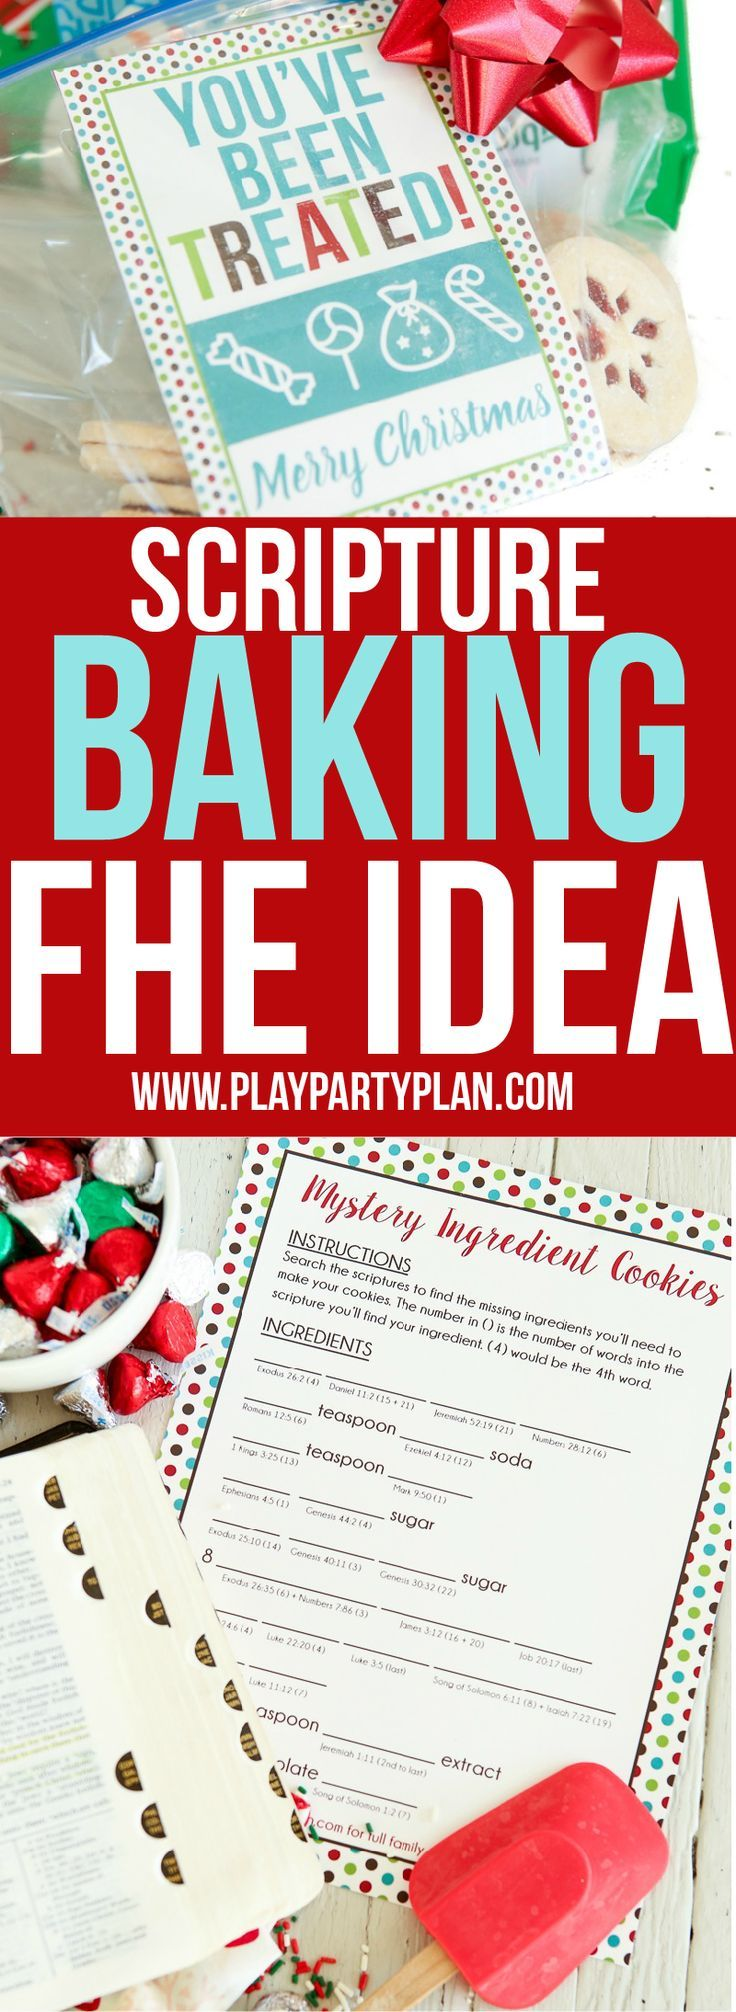 Fun LDS family home evening idea that's great for kids, for teens, or even for couples to do together. Read the scriptures to find the missing ingredients, bake cookies, and use the free printable Christmas treat gift tags to give to friends and family. One of the most fun activities I did as a kid! #LightTheWorld Sponsored